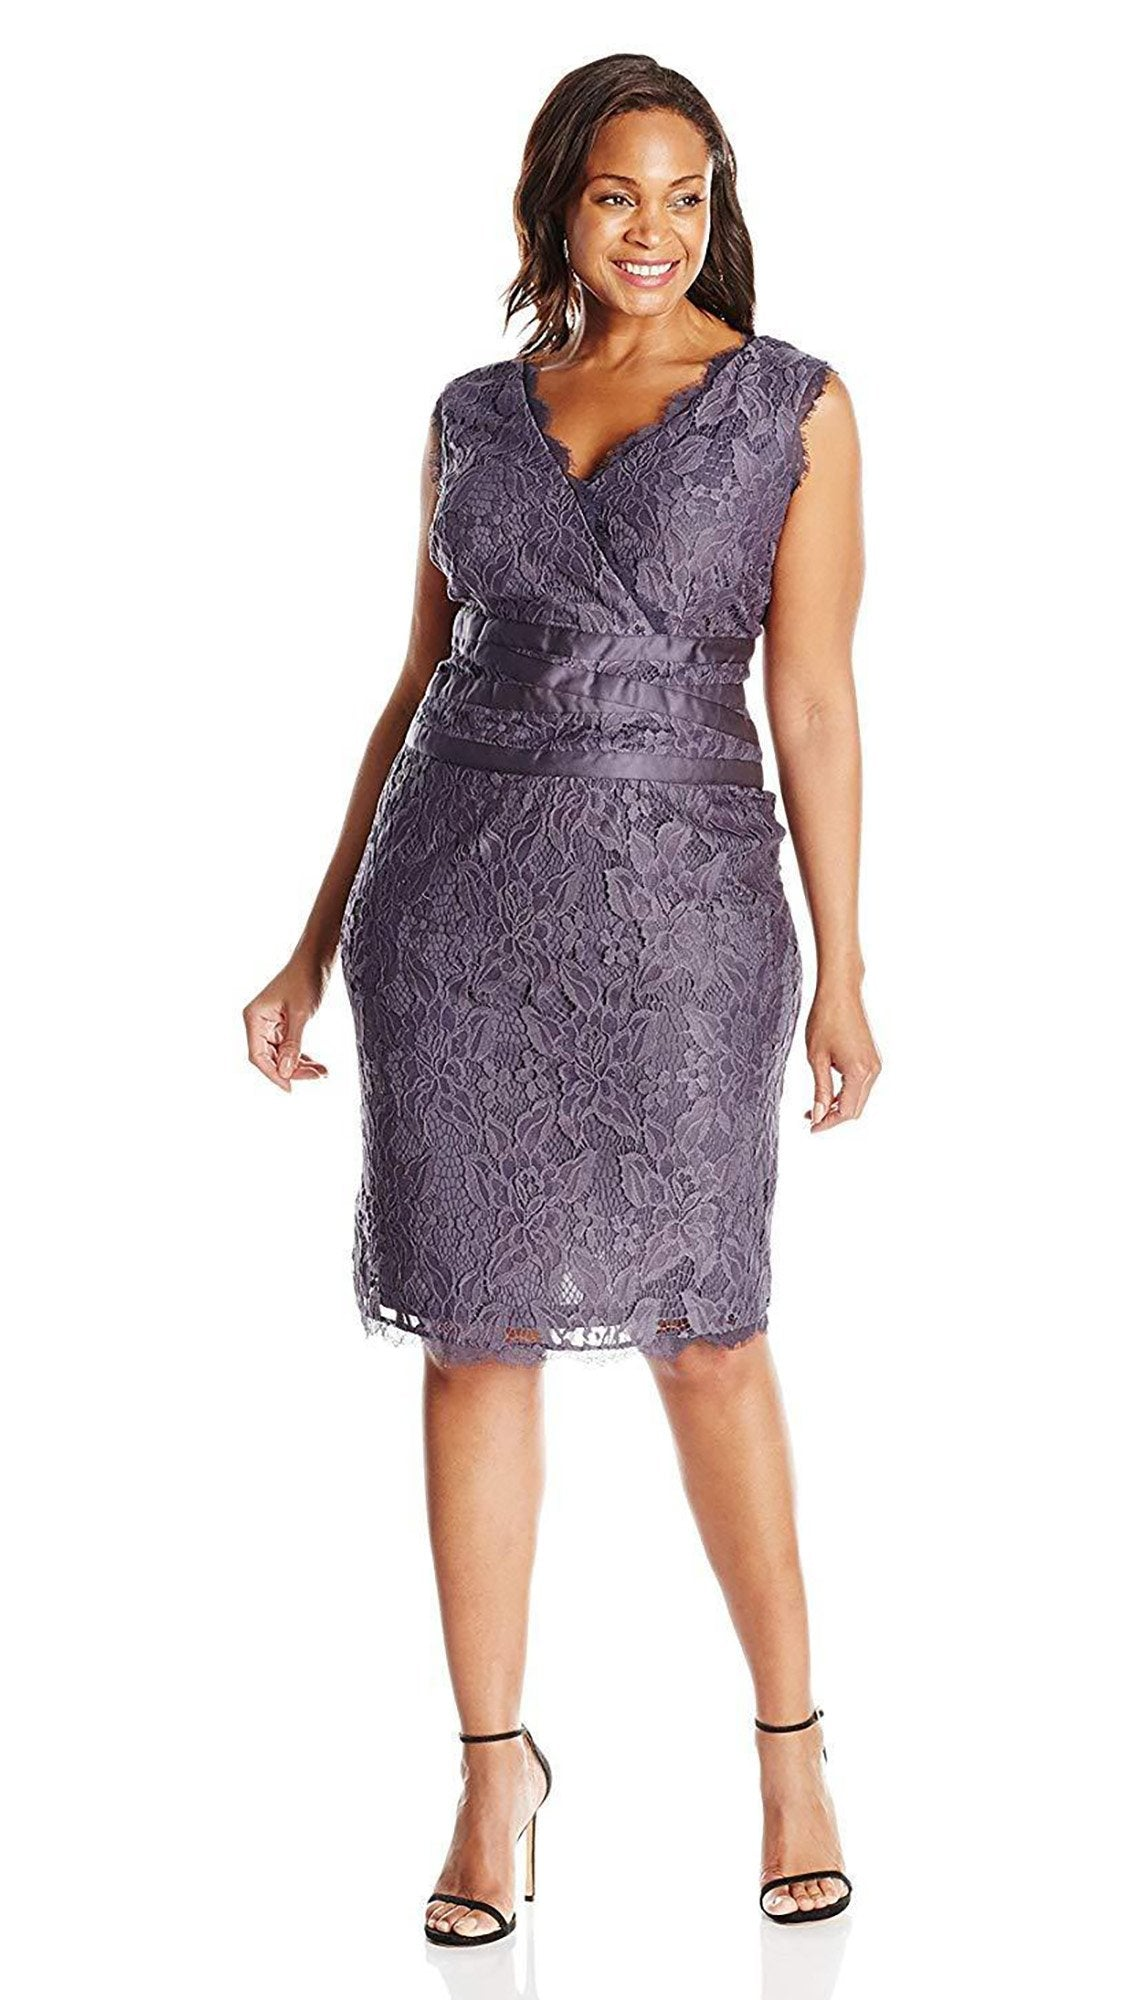 Adrianna Papell - 41905221SC Knee Length Satin Wrap Waist Lace Dress